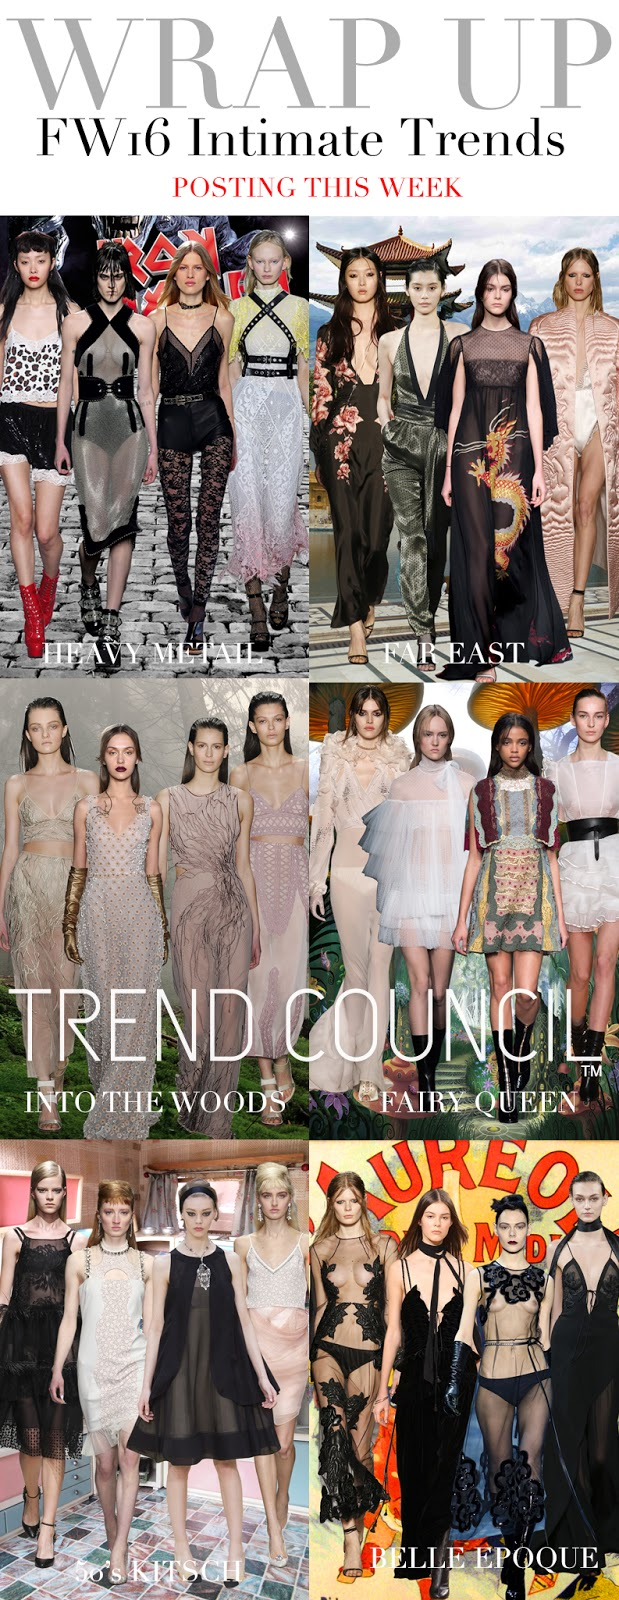 TRENDS // TREND COUNCIL - INTIMATE TRENDS . FW 2016